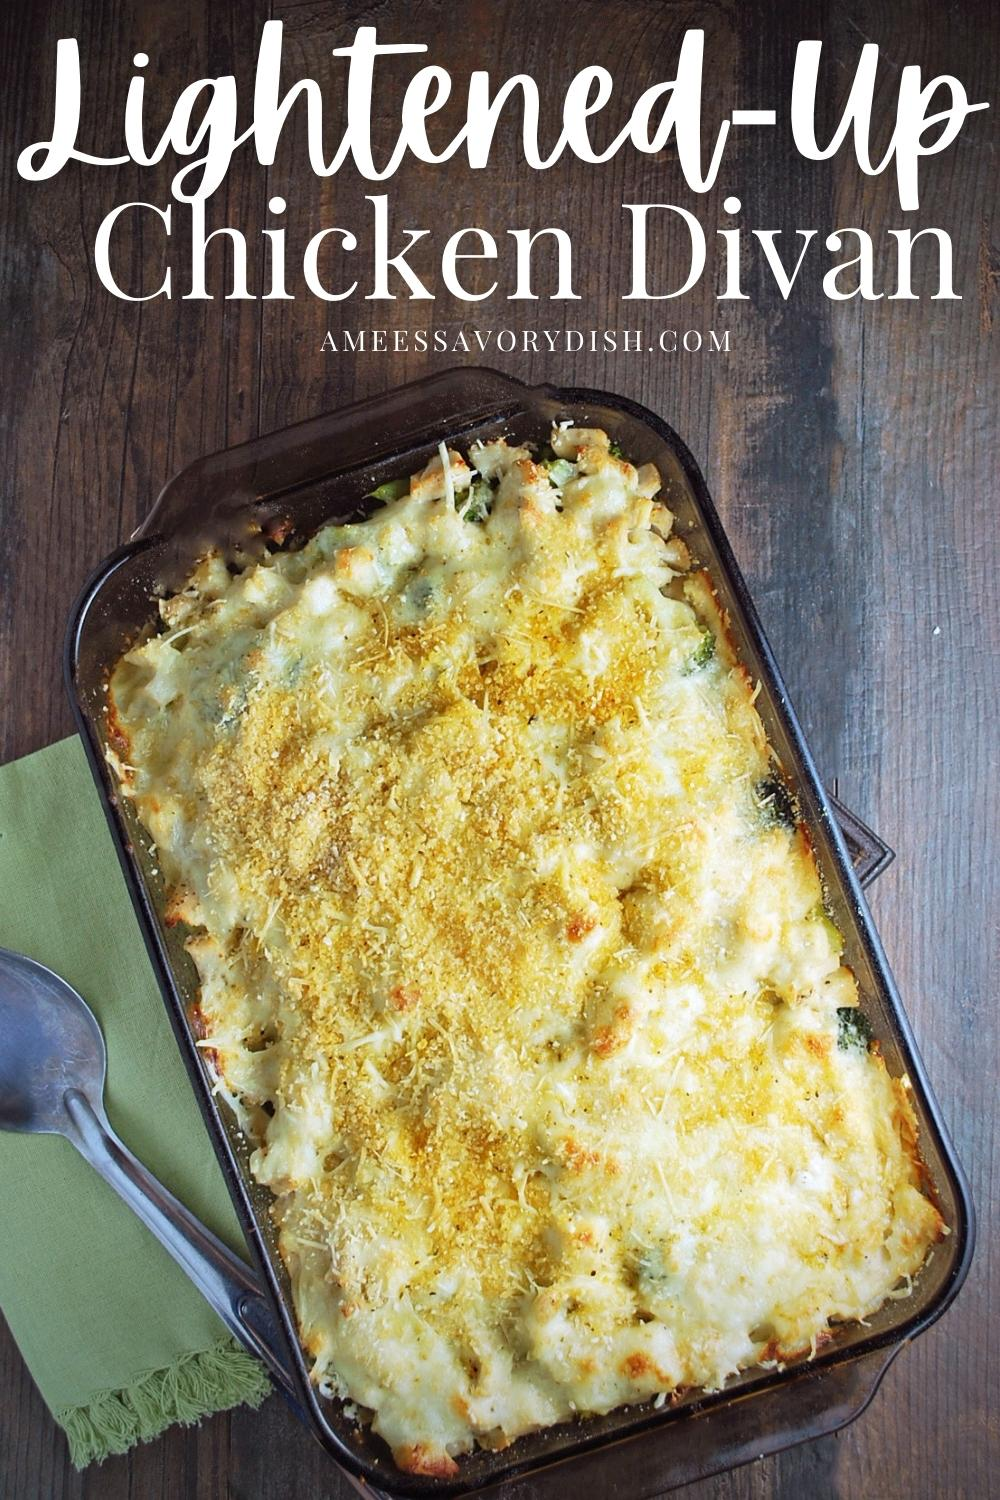 A healthier recipe for lightened-up chicken divan that's sure to please the pickiest palate made with white cheddar, chicken, and broccoli. #chickendivan #chickencasseroles #chickenrecipes #easychickendinners #chicken via @Ameessavorydish